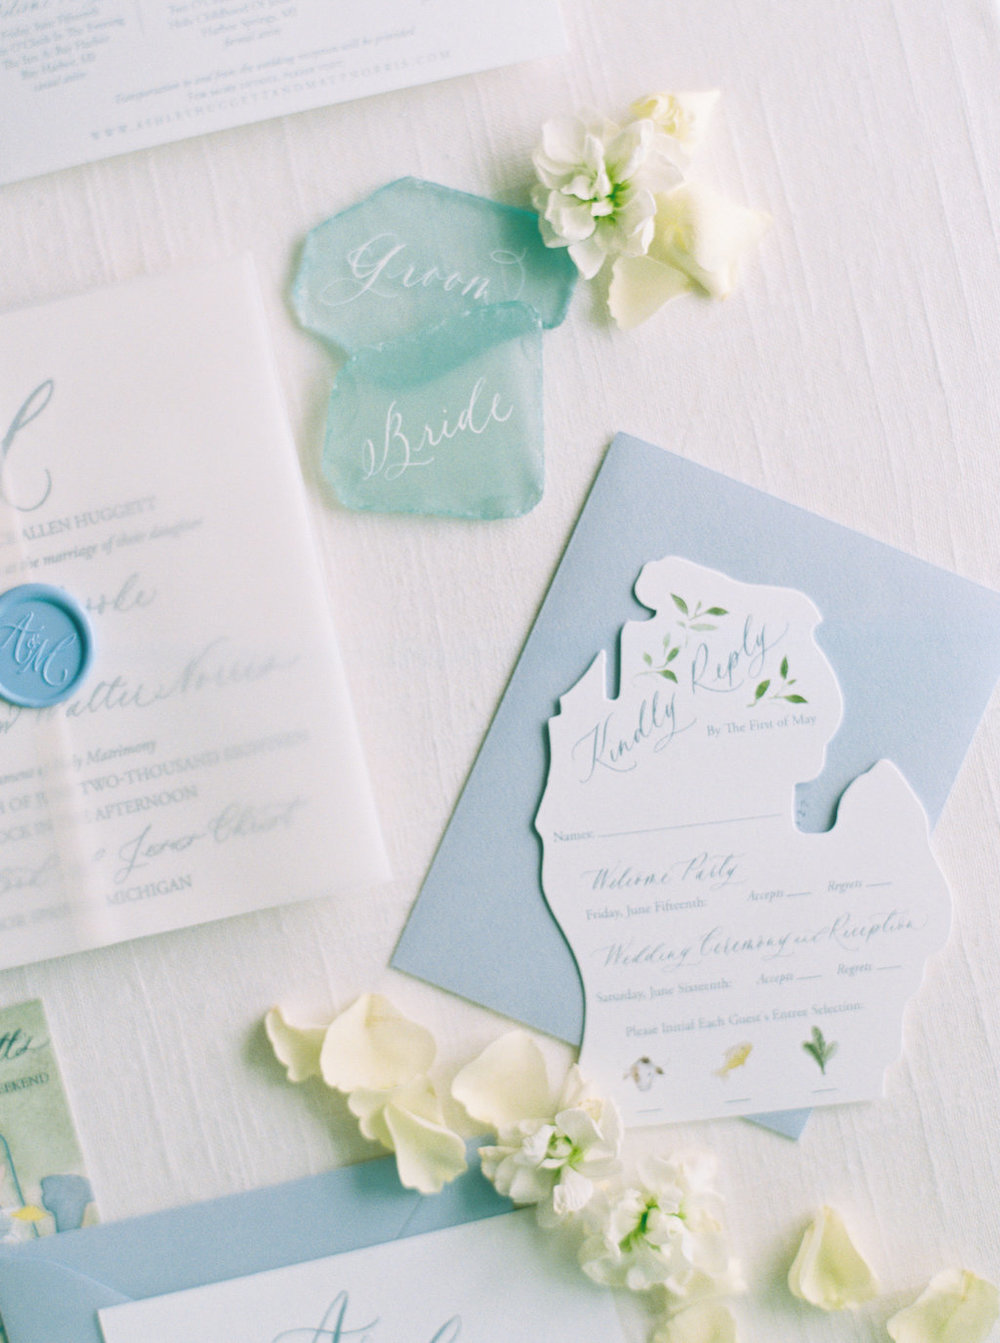 Custom die cut Michigan RSVP Card with watercolor elements and calligraphy.